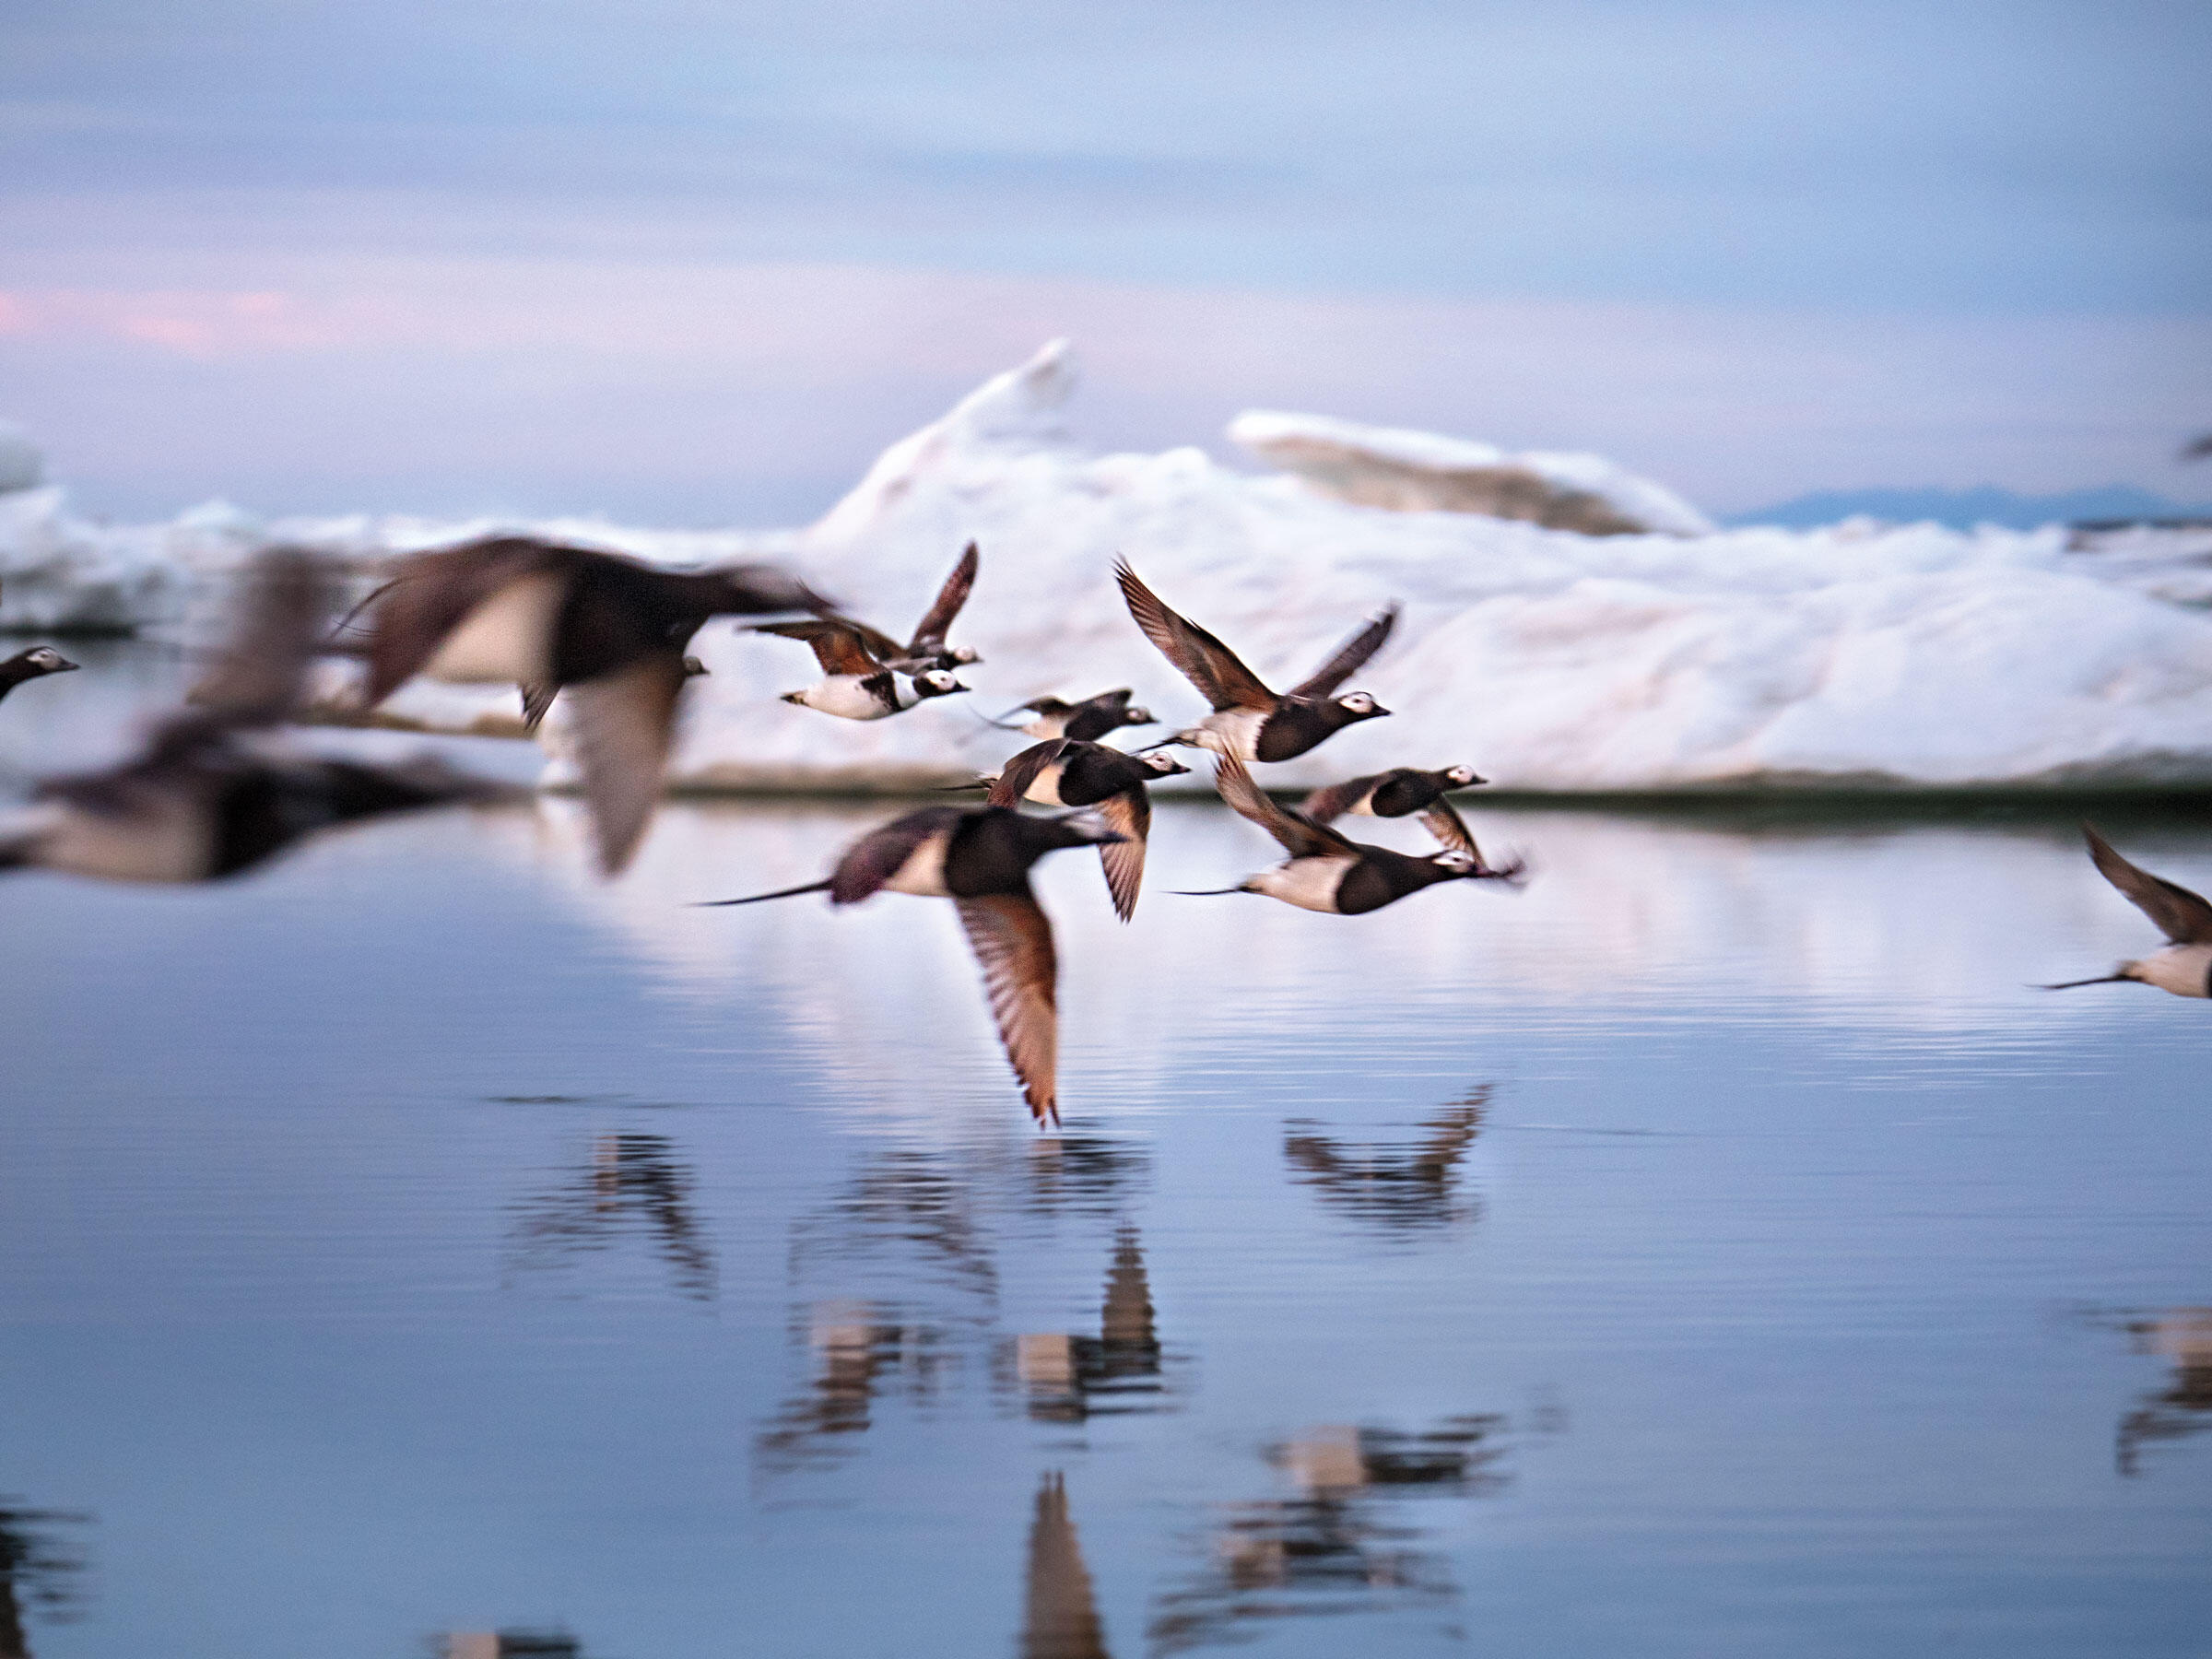 A flock of Long-tailed Ducks skims over the Arctic Ocean off the coast of the refuge. During summer the especially vocal species is abundant in the high Arctic, where it breeds. Peter Mather